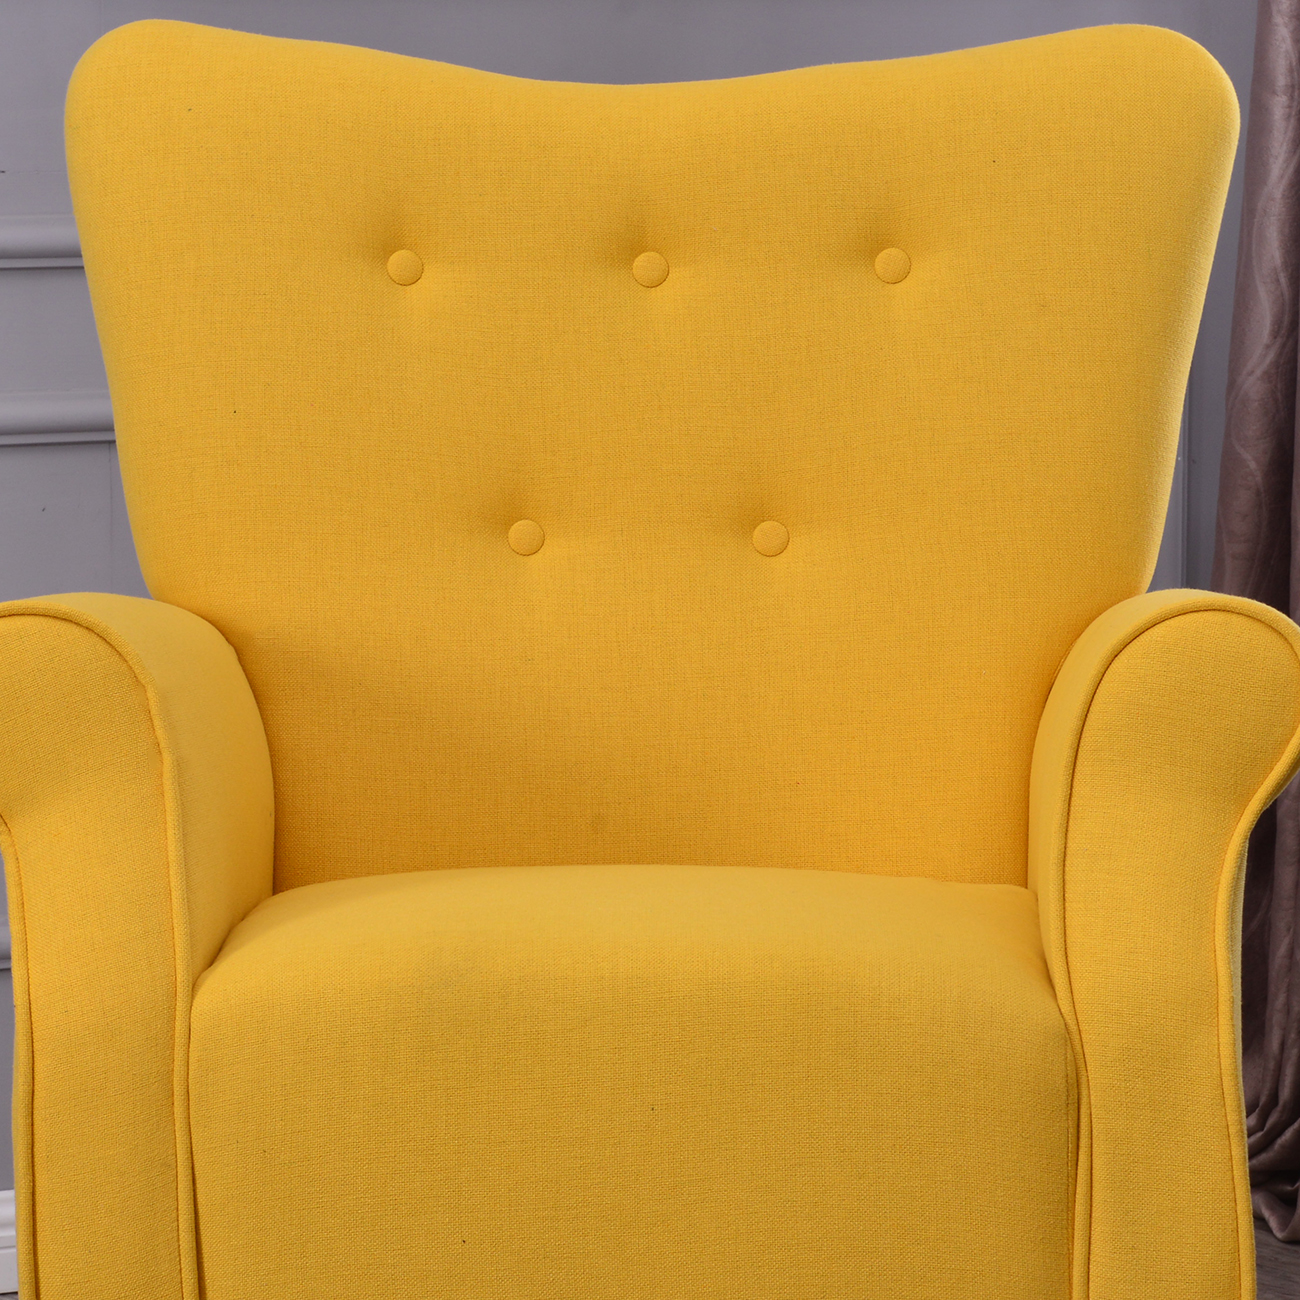 yellow upholstered accent chair leather recliner swivel arm single sofa linen fabric